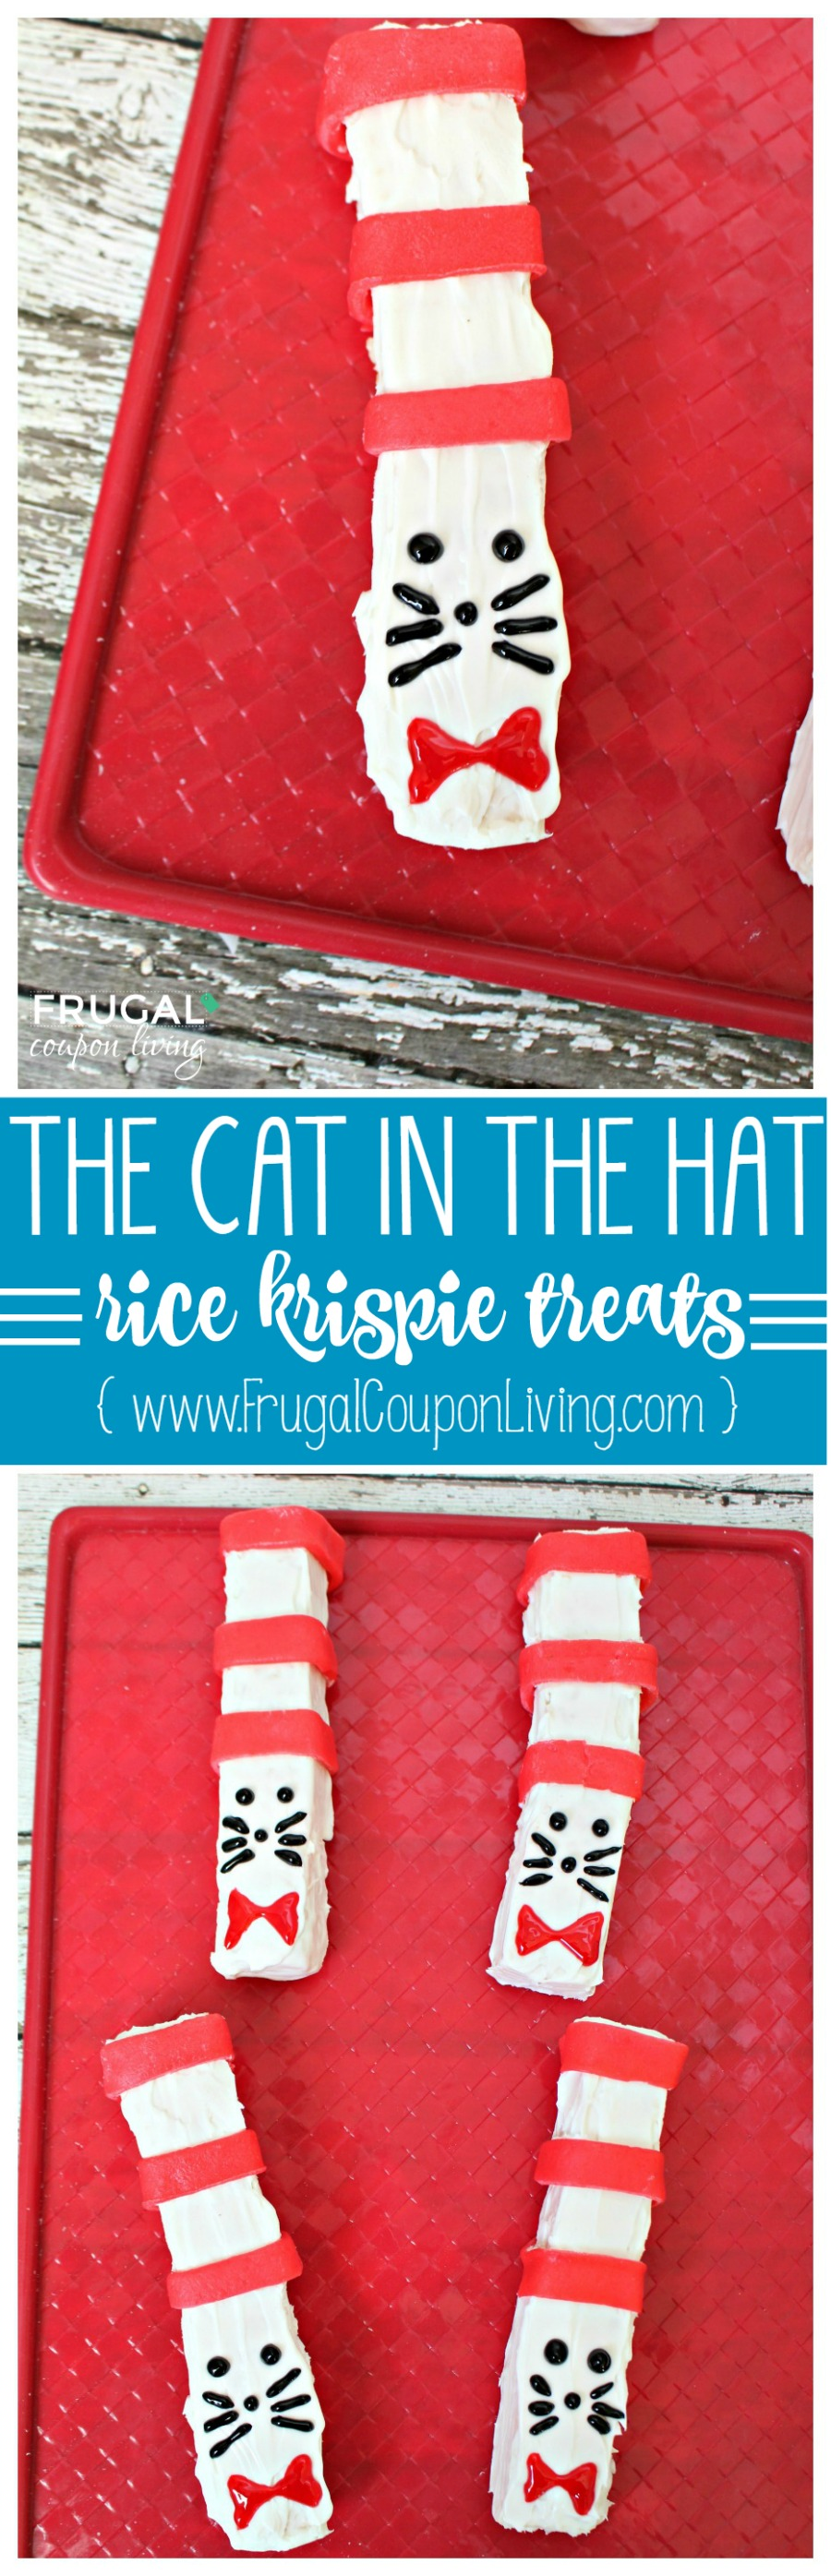 cat-in-the-hat-rice-krispie-treats-frugal-coupon-living